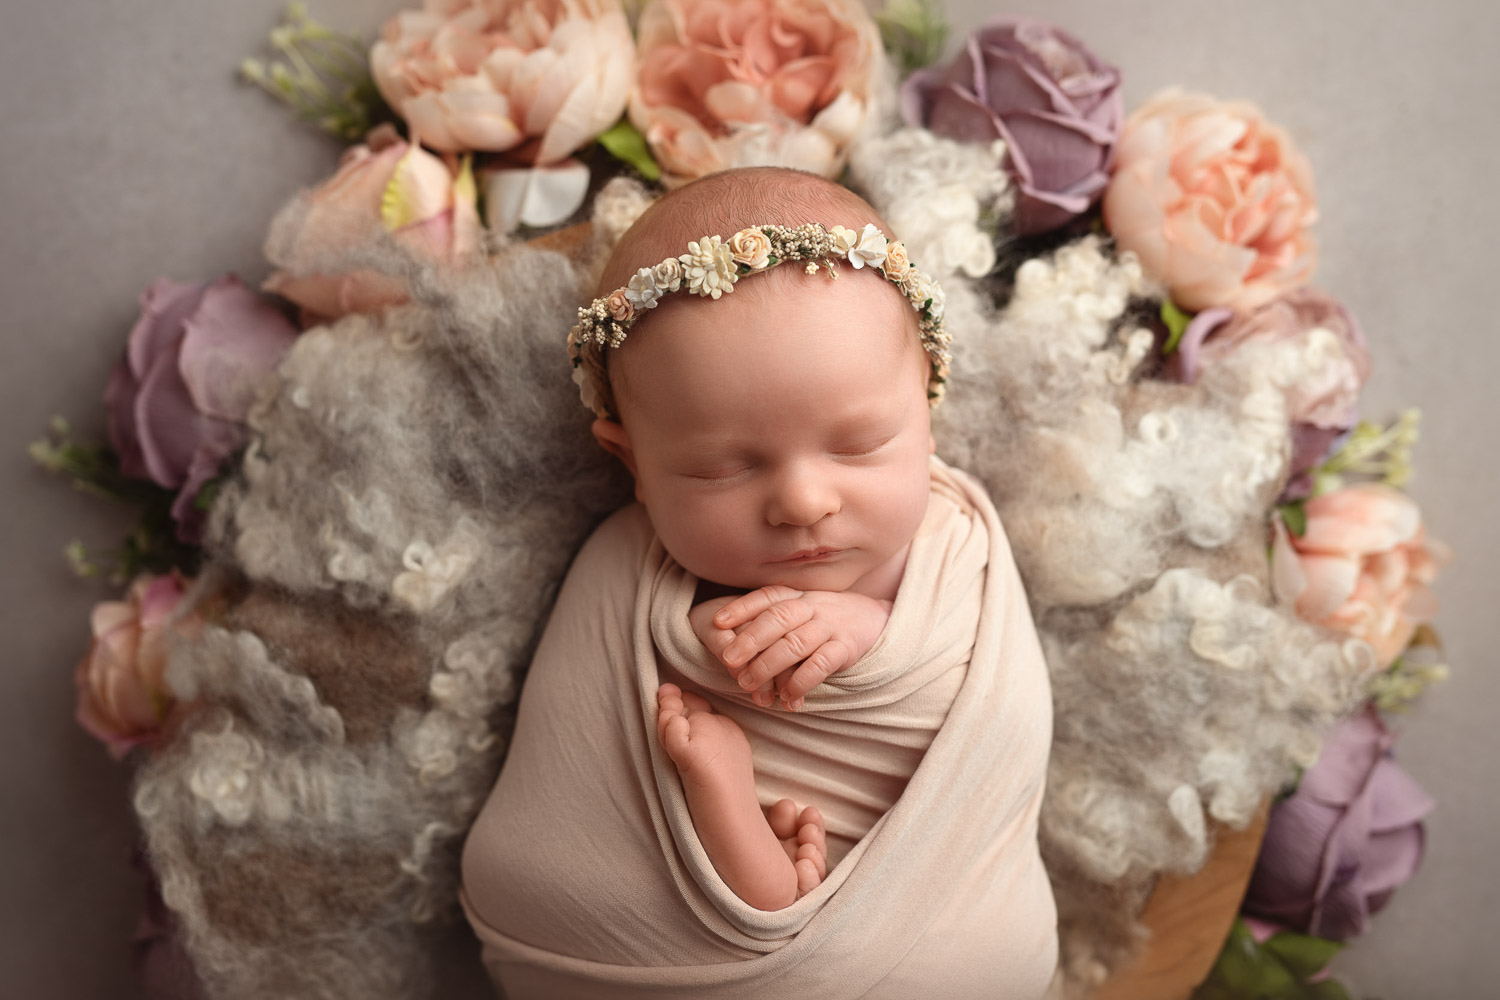 flower theme baby photo by auckland newborn photographer siobhan kelly photography